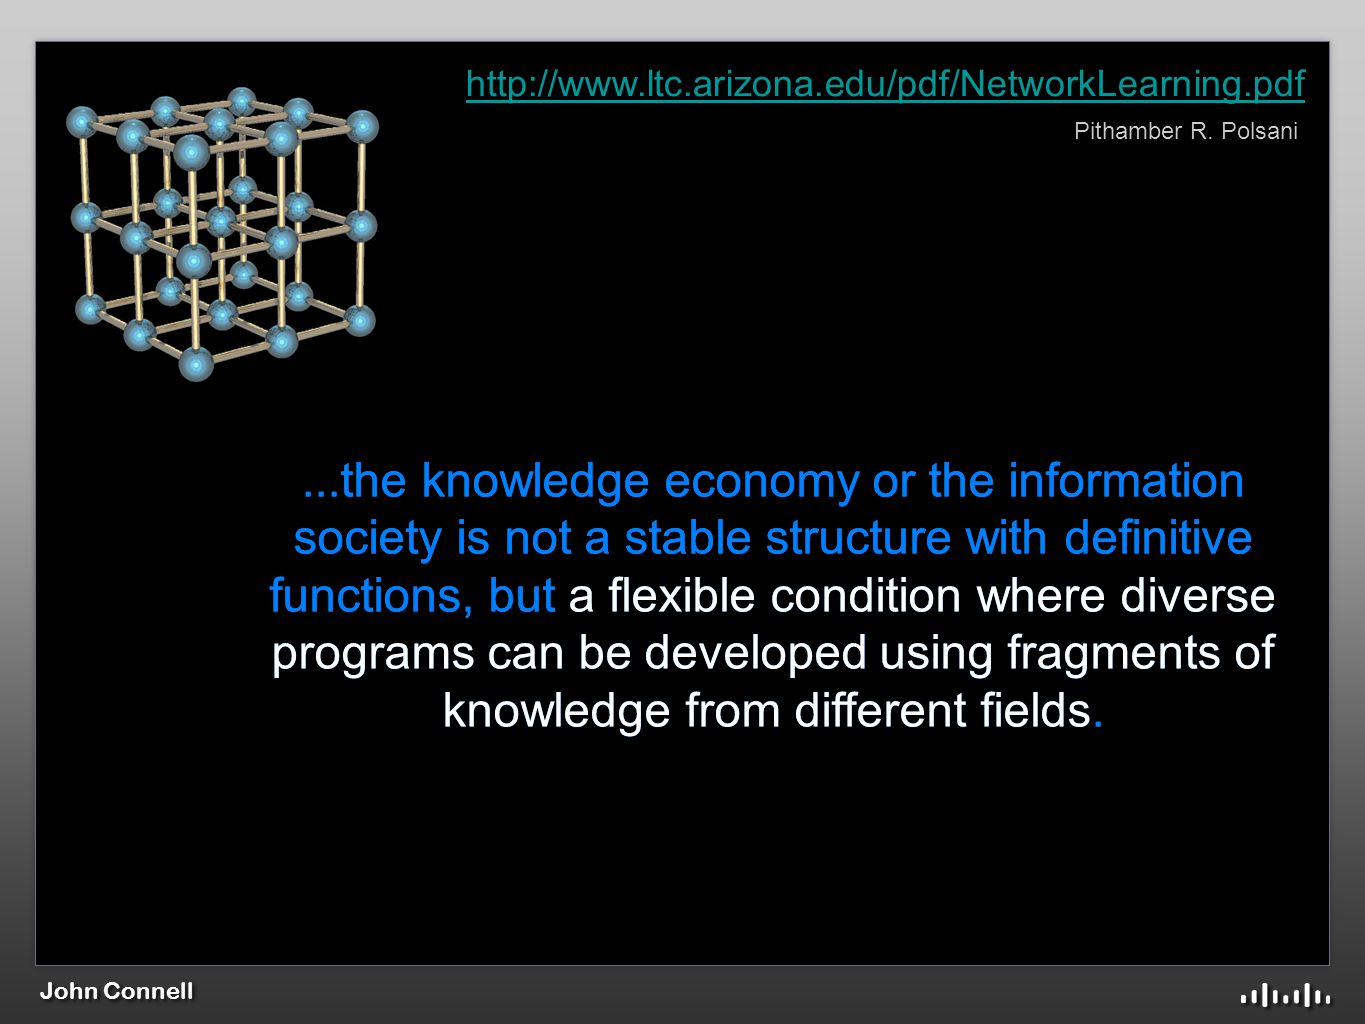 John Connell...the knowledge economy or the information society is not a stable structure with definitive functions, but a flexible condition where diverse programs can be developed using fragments of knowledge from different fields....the knowledge economy or the information society is not a stable structure with definitive functions, but a flexible condition where diverse programs can be developed using fragments of knowledge from different fields.